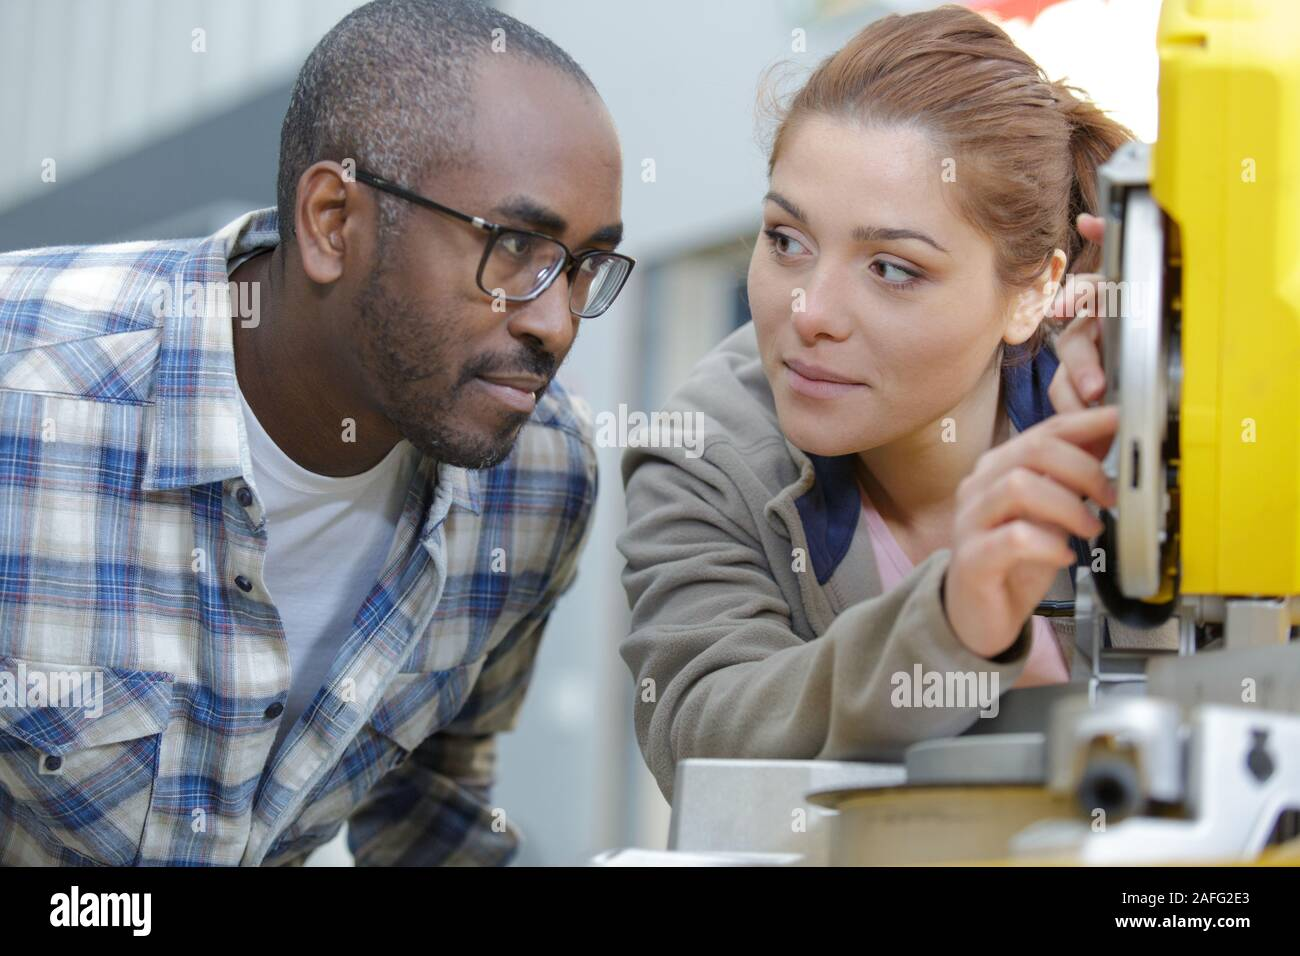 they worker together in factory Stock Photo